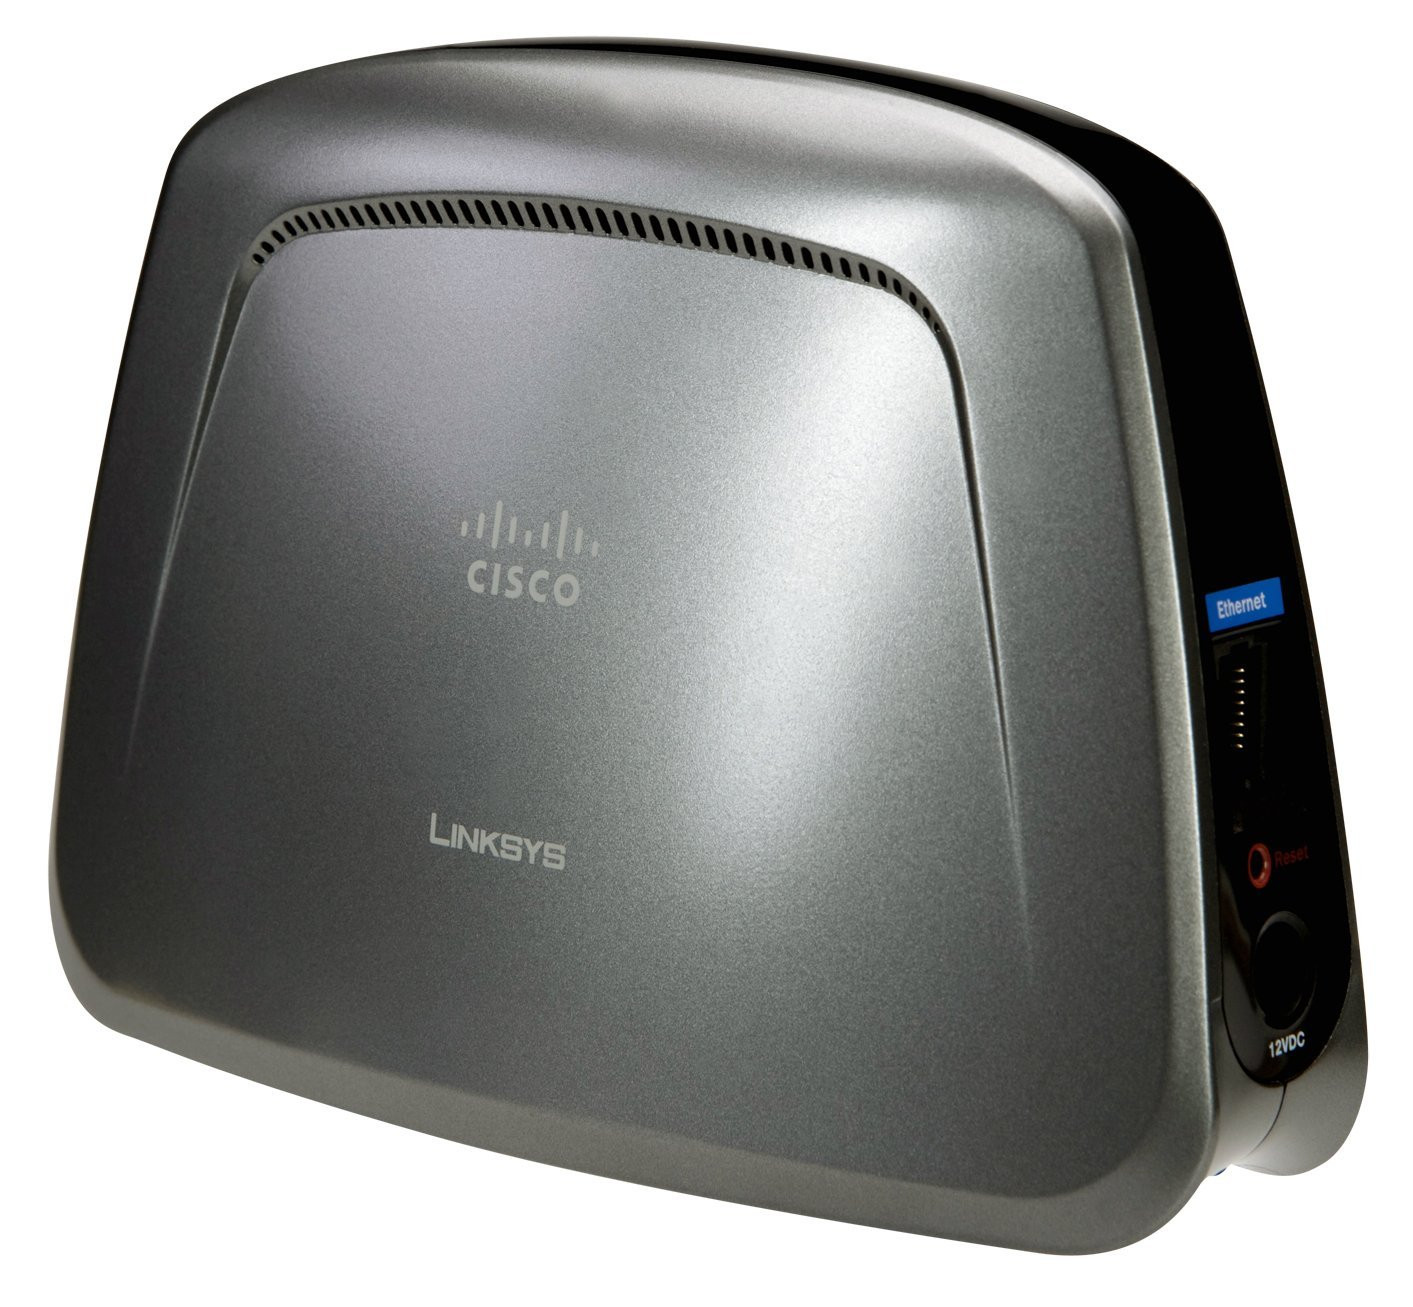 Cisco-Linksys WET610N Dual-Band Wireless-N Gaming and Video Adapter ...